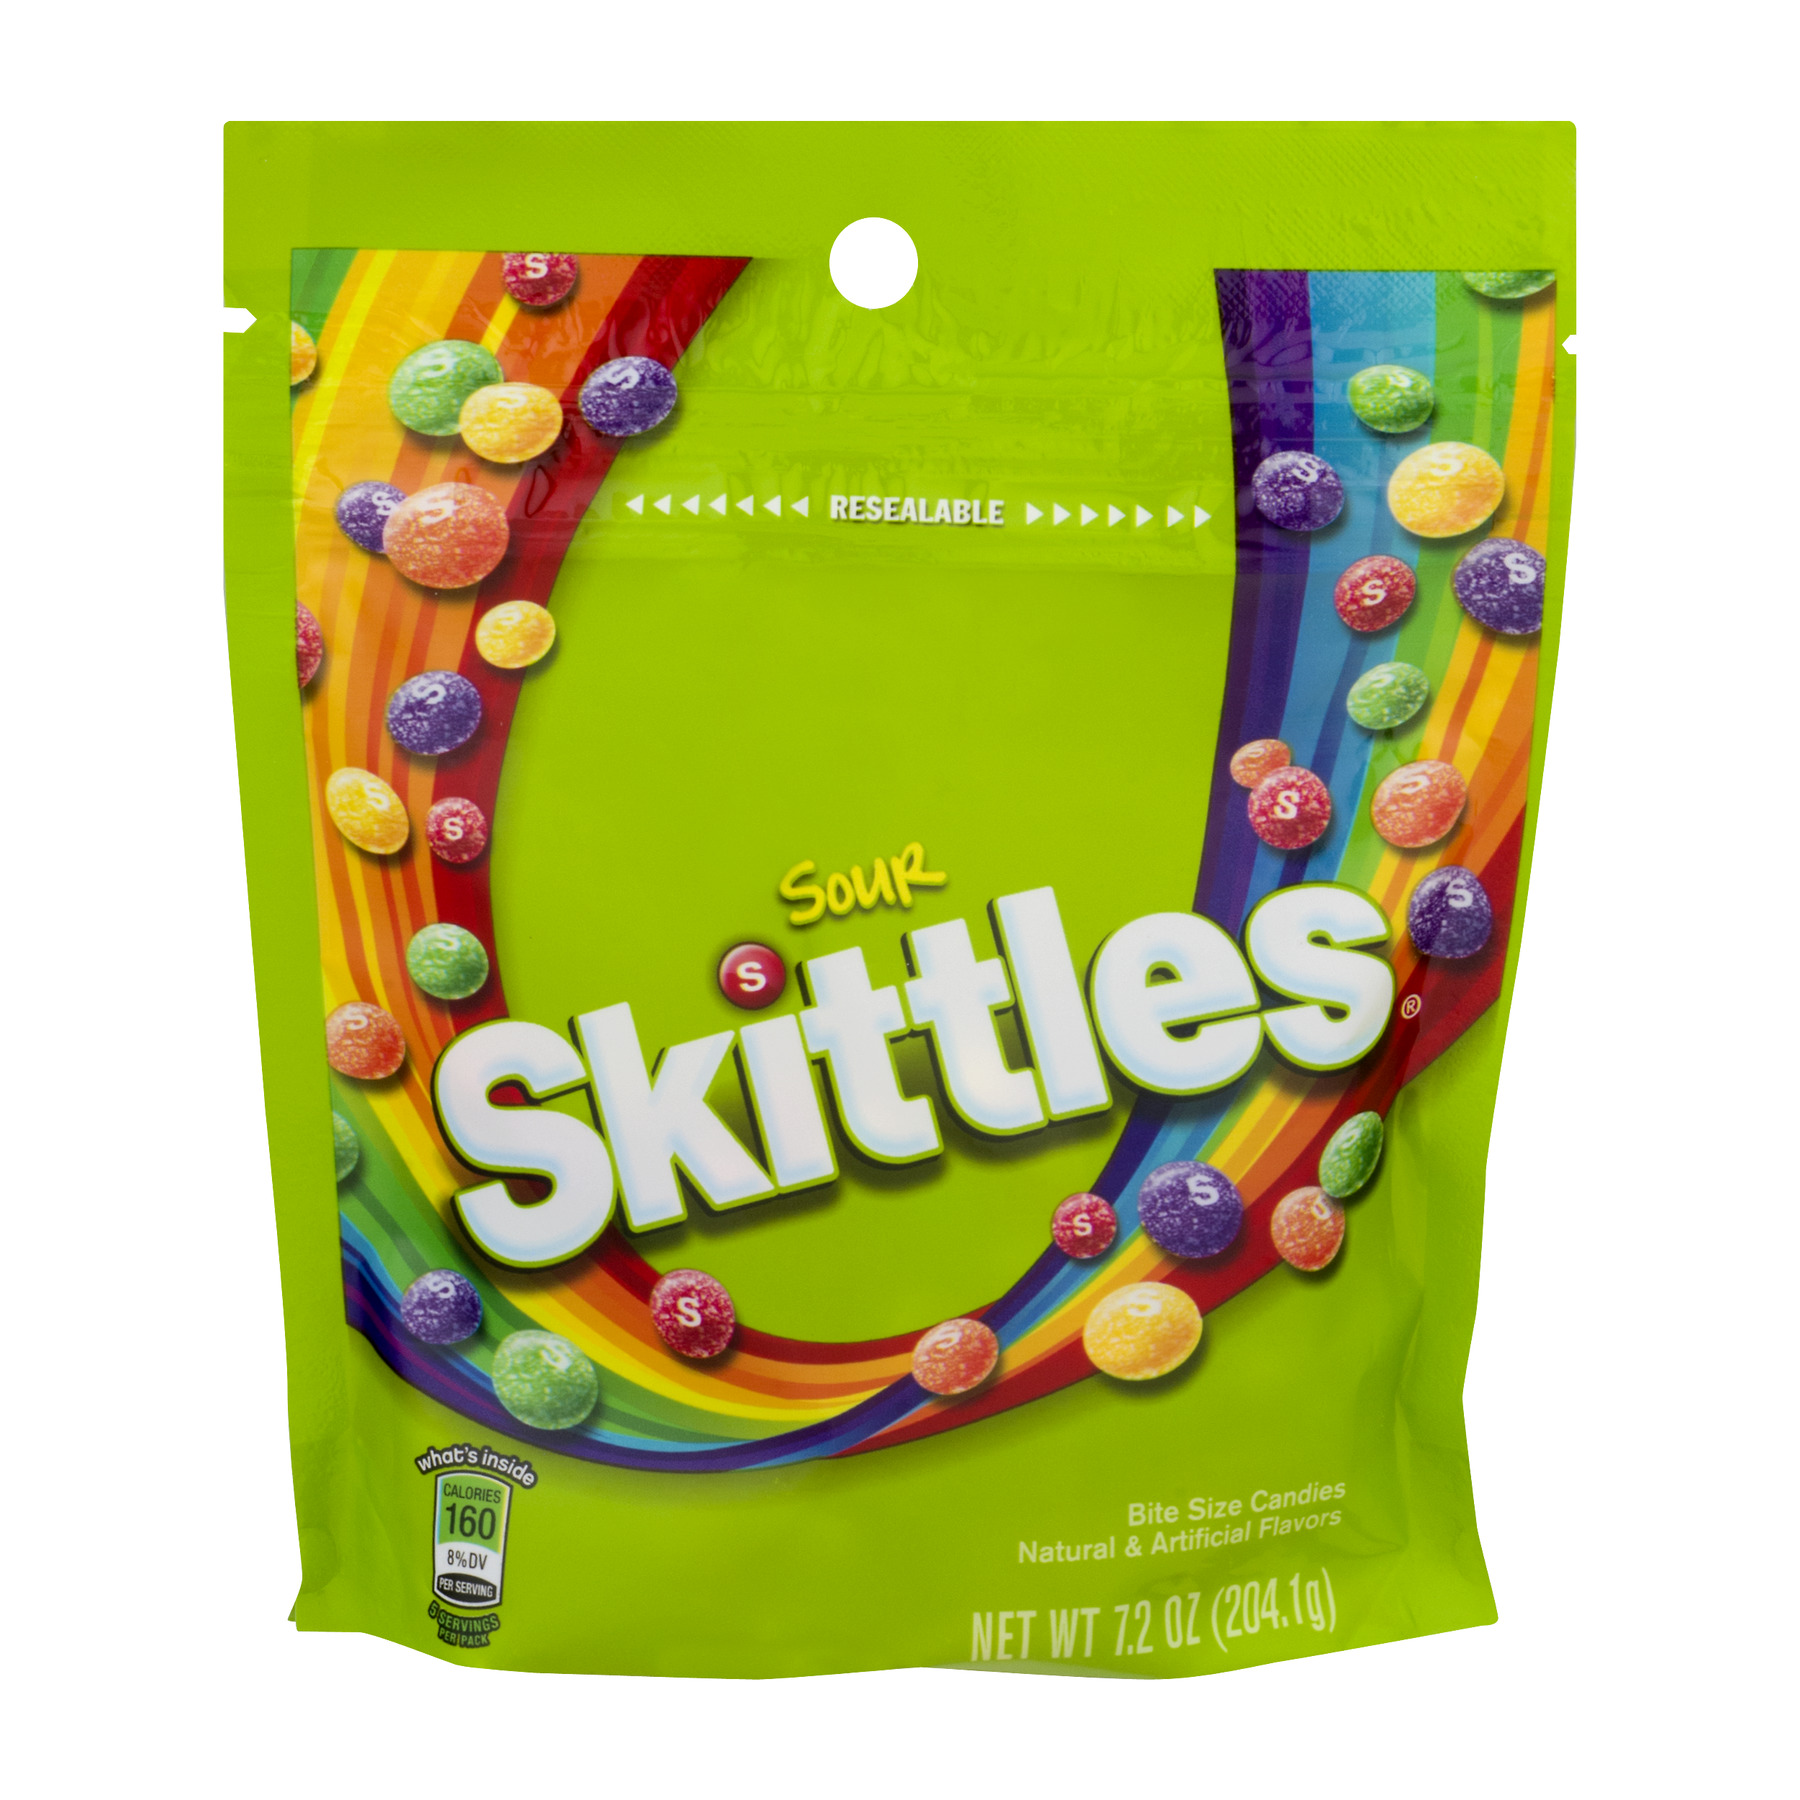 (4 Pack) Skittles, Sour Chewy Candy, 7.2 Oz